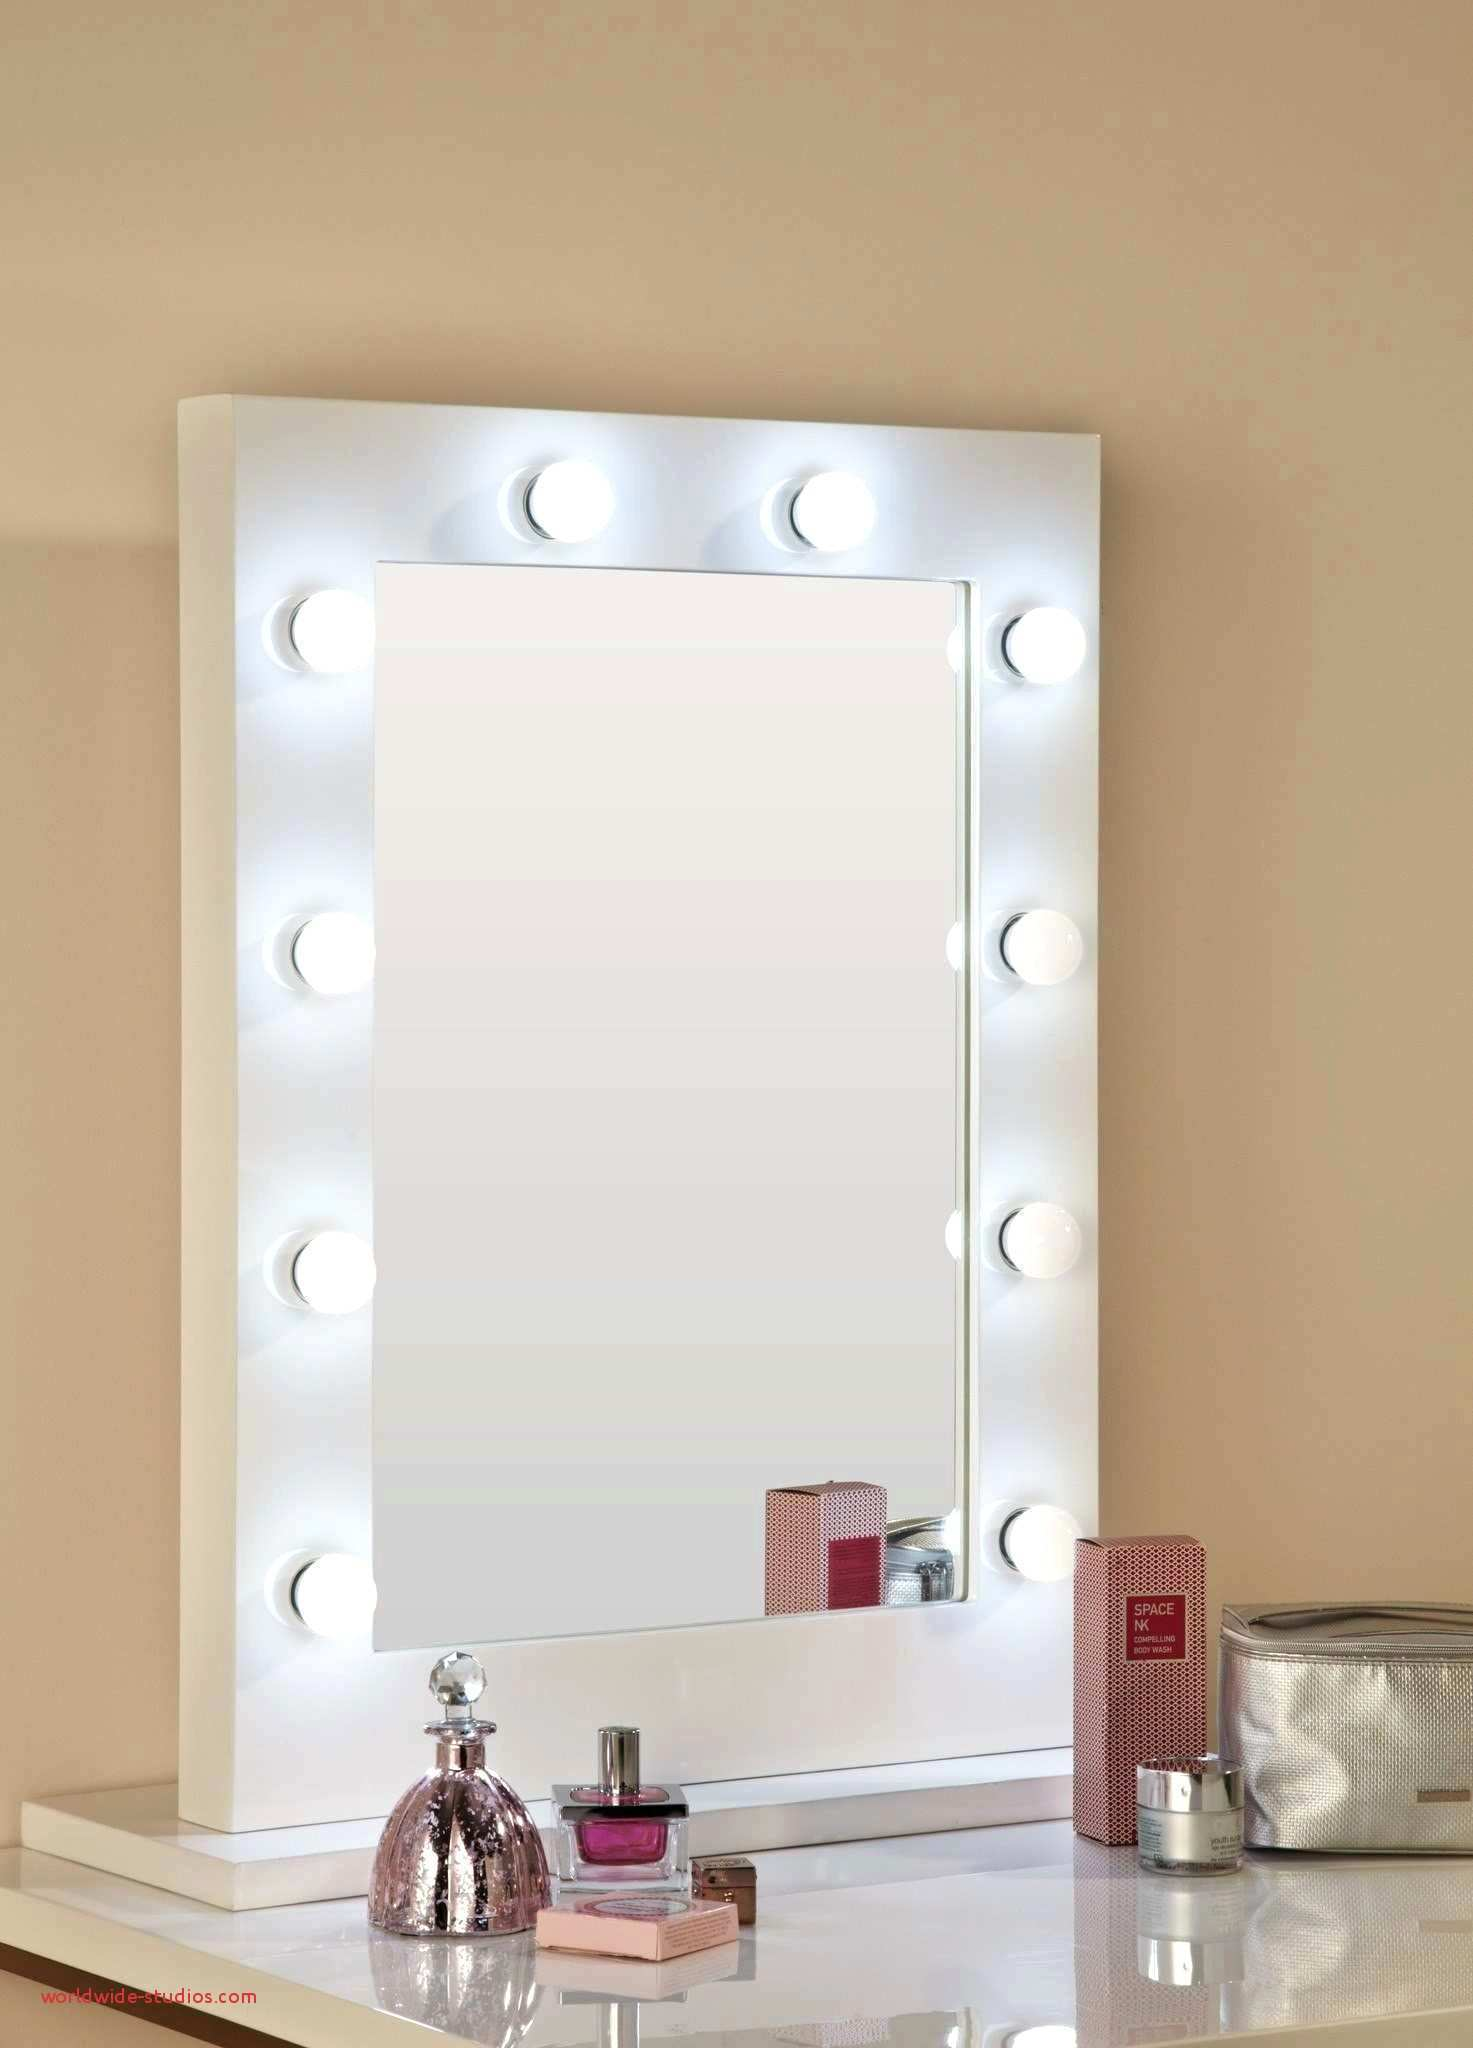 Top Result Diy Wood Frame for Mirror Inspirational Metal Wall Art